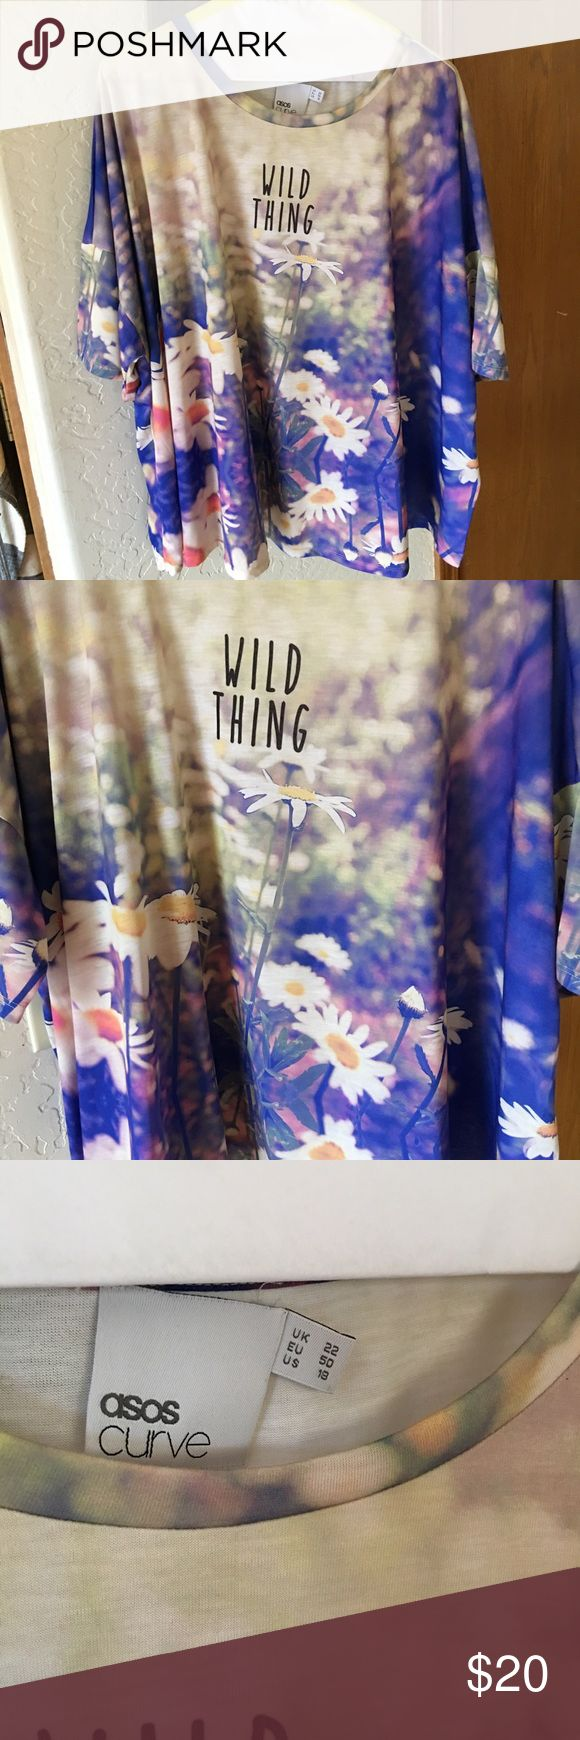 """'Wild Thing' Floral ASOS Curve Top Never before worn, this boxy tee is so cute on. It's the best way to take a basic t-shirt and spice it up with some floral notes. The print is very lifelike, and it adds and extra something to the top. The little bit of text """"wild thing"""" is completely on trend right now. Works best over jeans, but if you have white pants - it would look spectacular! ASOS Curve Tops Tees - Short Sleeve"""